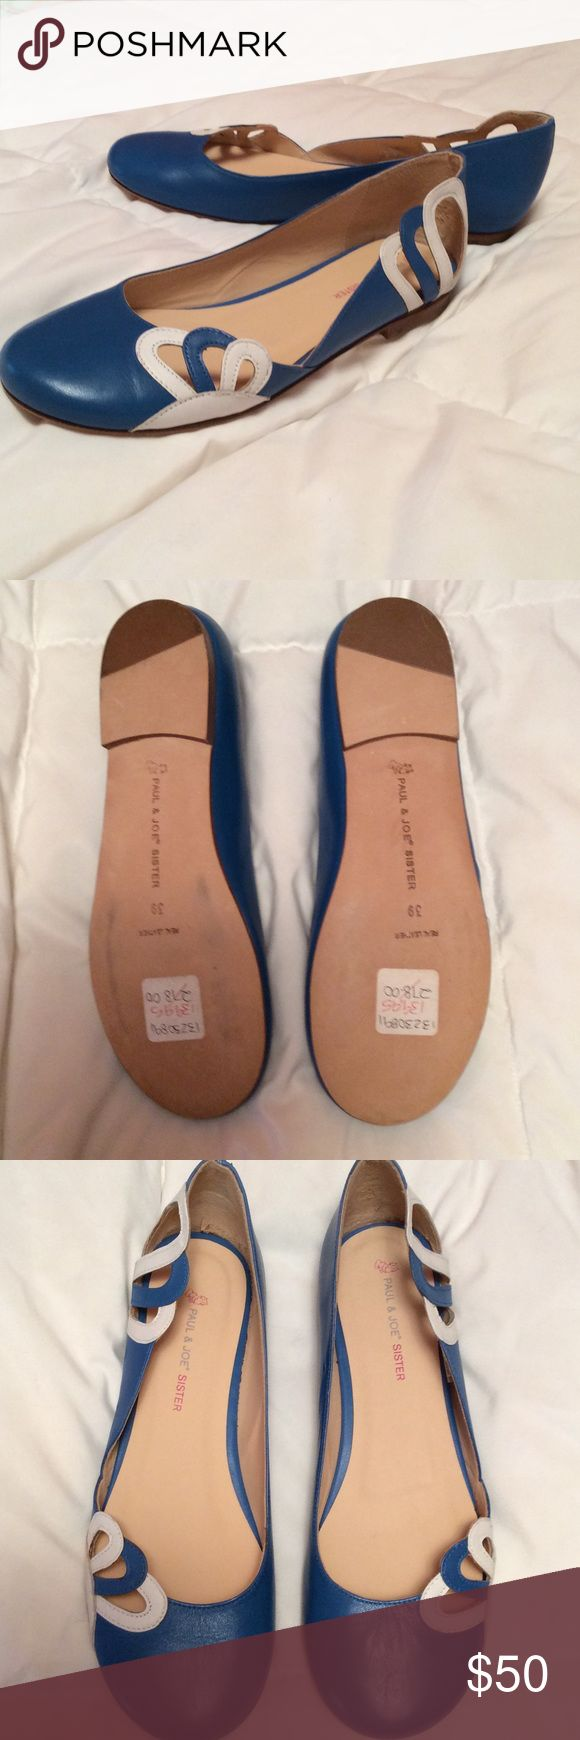 Beautiful brand new summer flats Royal blue and white Paul & Joe Sister flats. Mint condition-never been worn. Soft leather with white details on the sides. So cute for summer! Size 39 (9) but I'd say they run small. Paul & Joe Shoes Flats & Loafers